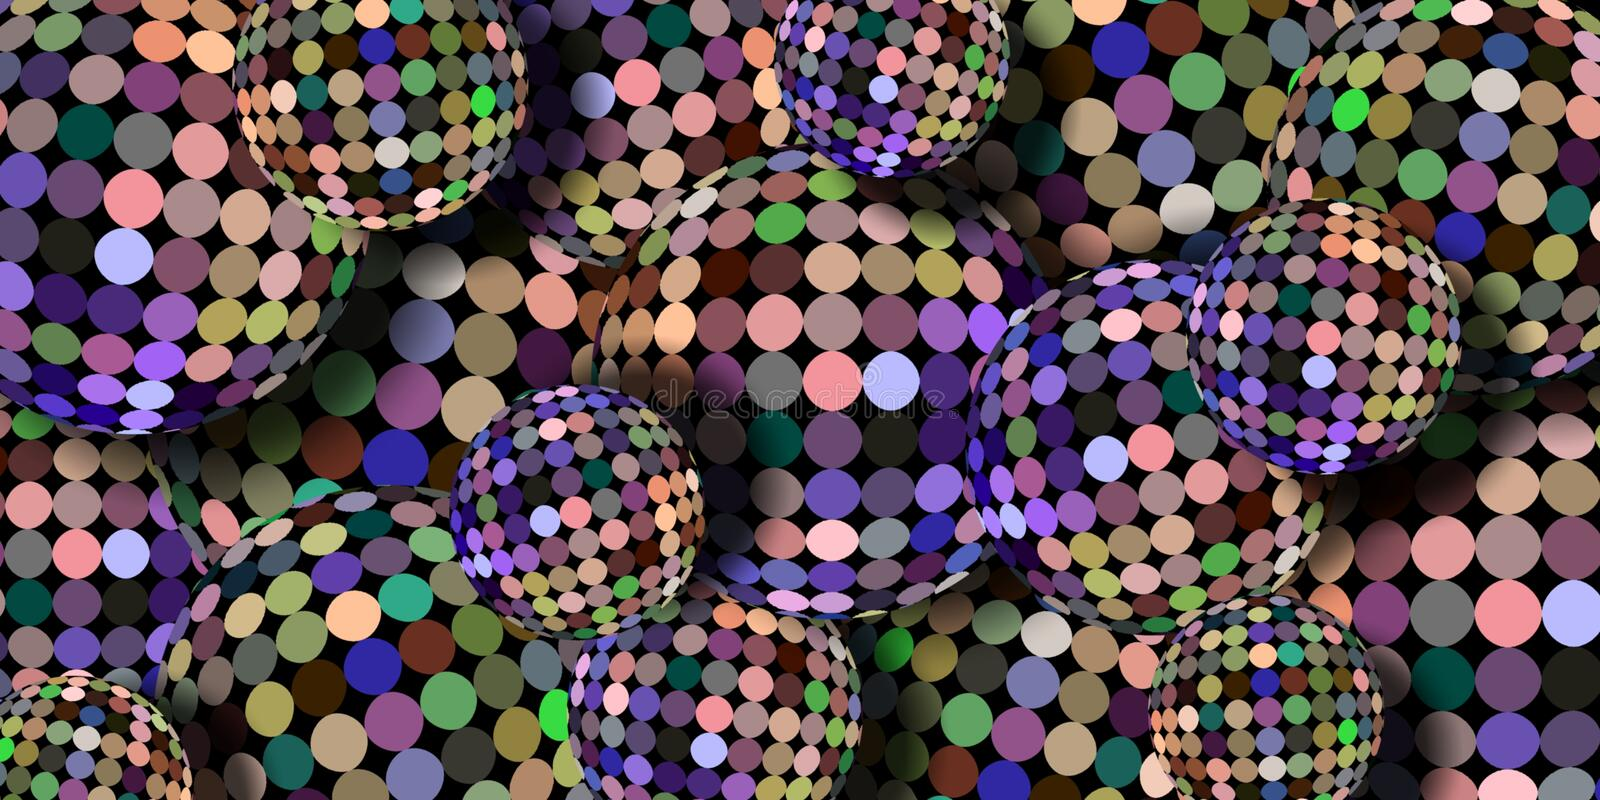 Holographic mirror shimmer 3d balls abstract wallpaper. Mosaic glitter festive background. Blue yellow green lilac iridescent dots royalty free illustration